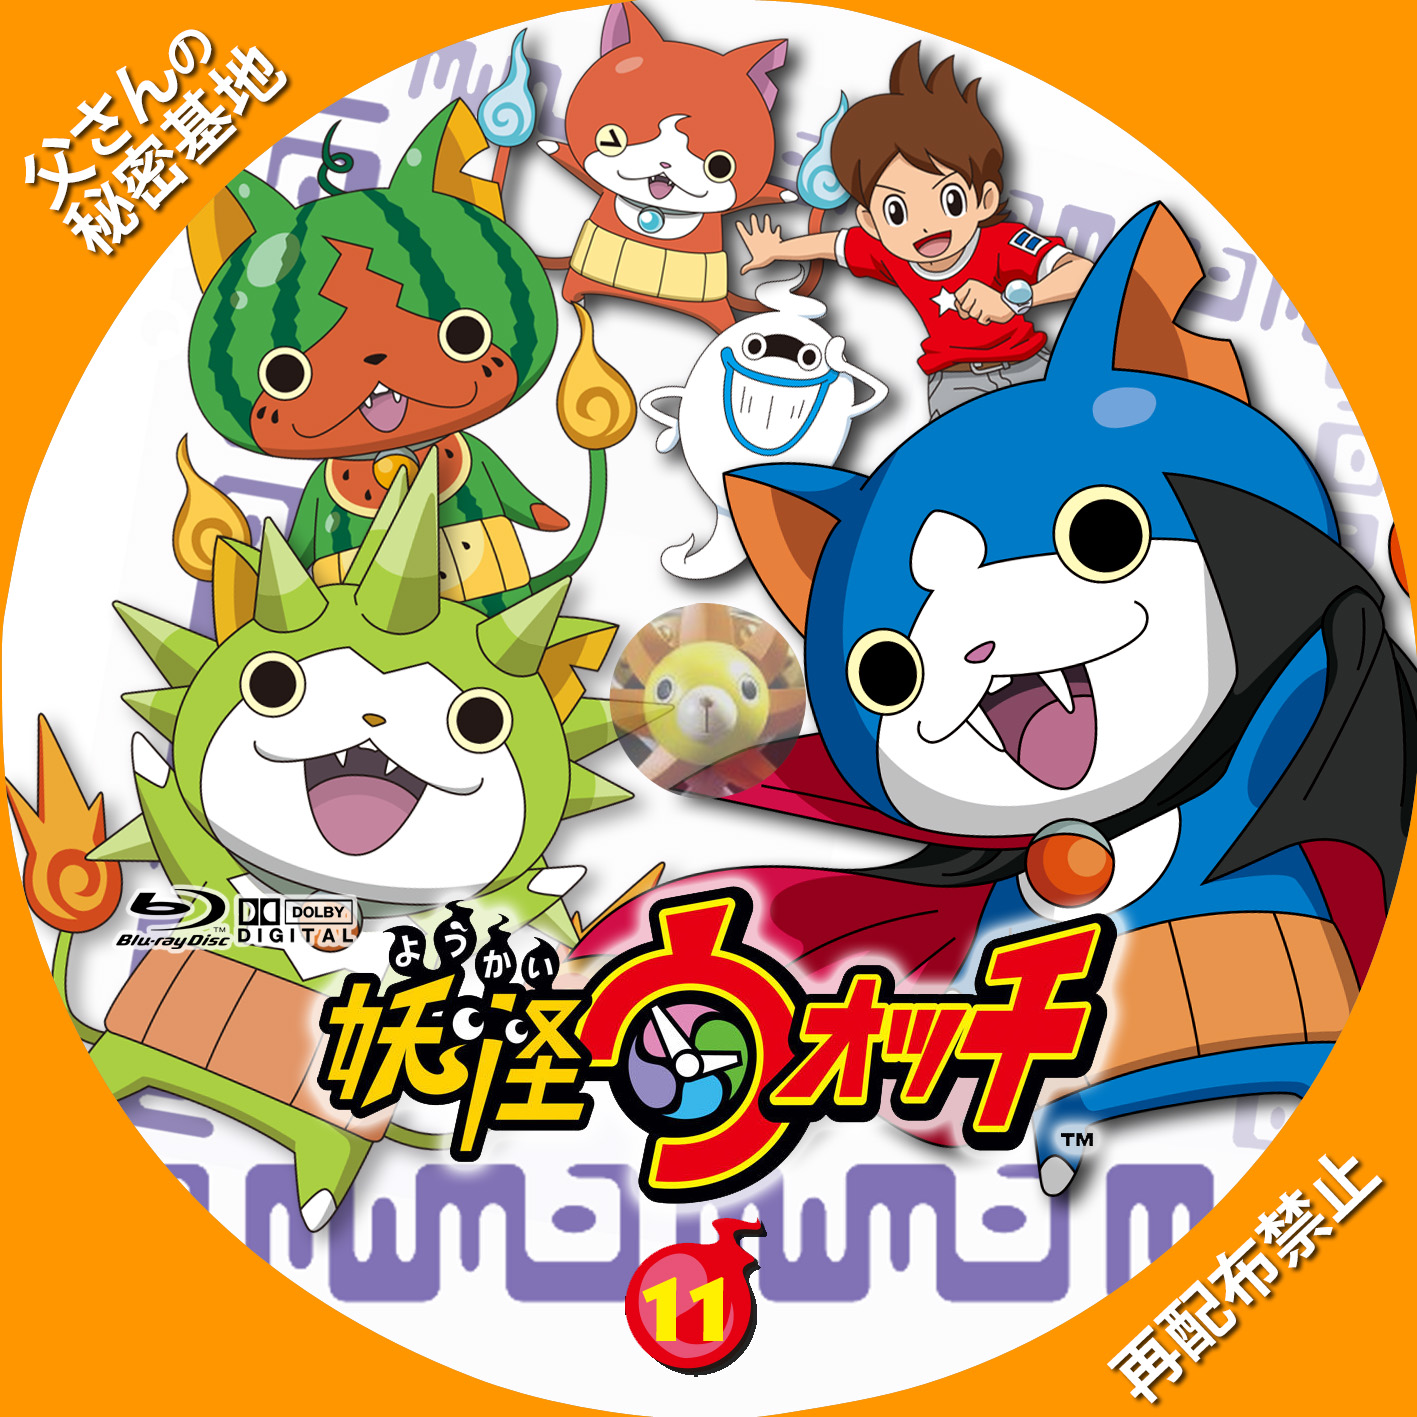 youkai-watch_11BDb.jpg